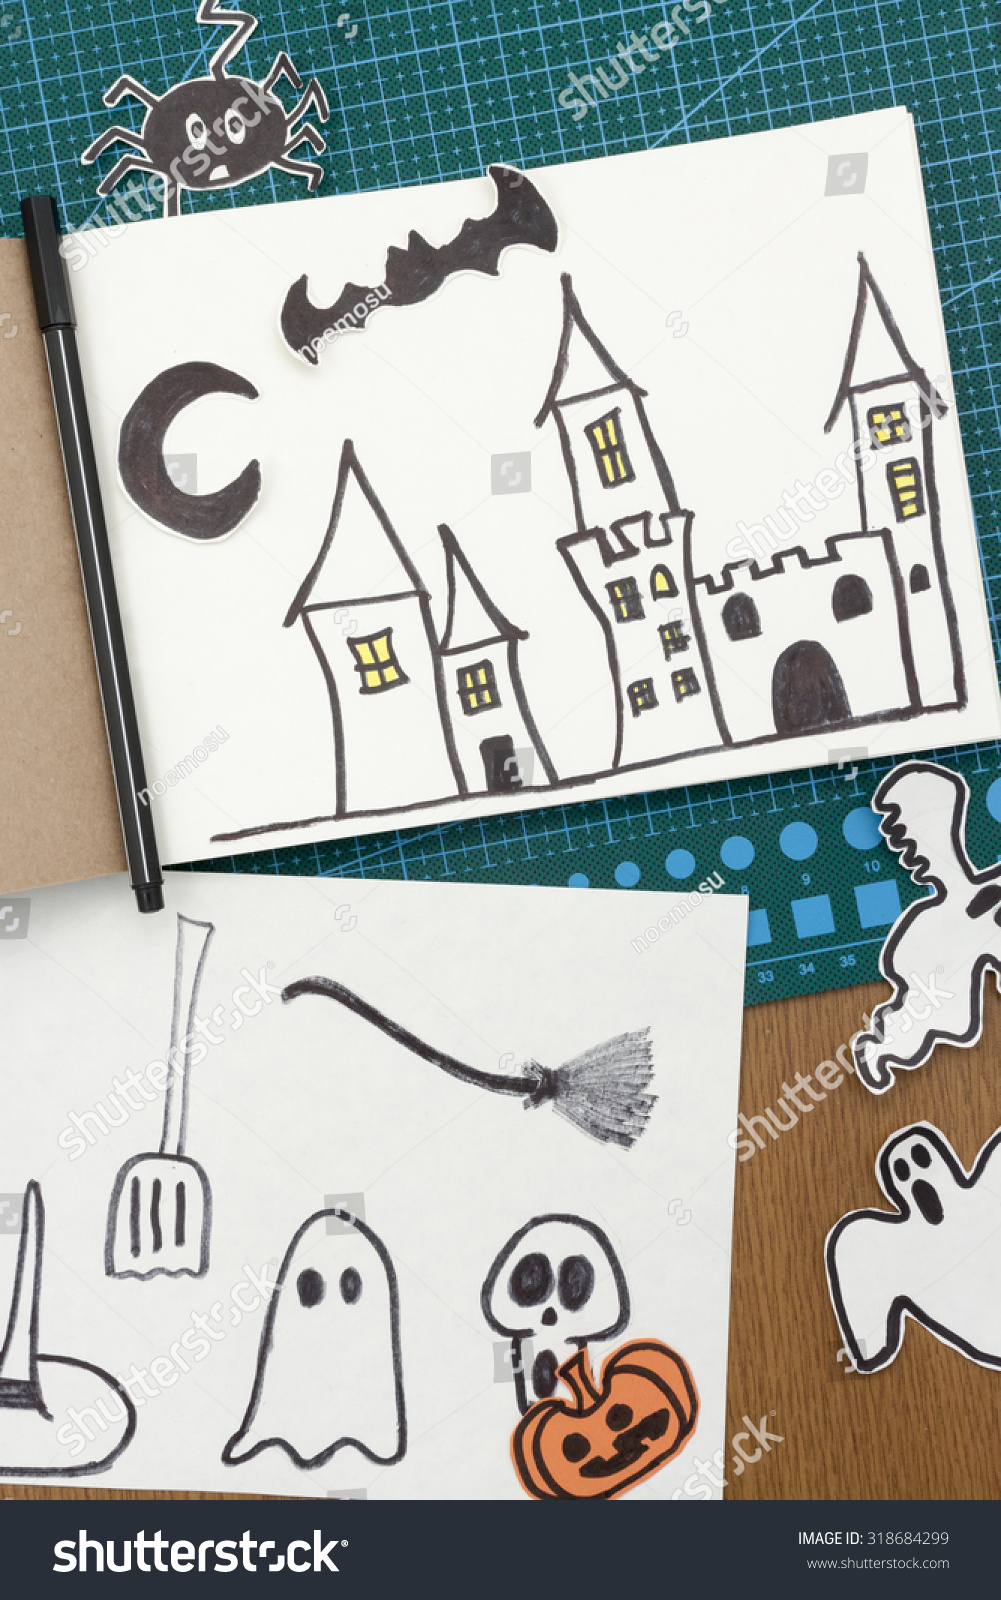 Our collection of diy halloween decoration ideas and spookily stylish fall mantel decor is sure to bring a little magic to your. Overhead View Scene Drawing Halloween Decorations Stock Photo Edit Now 318684299